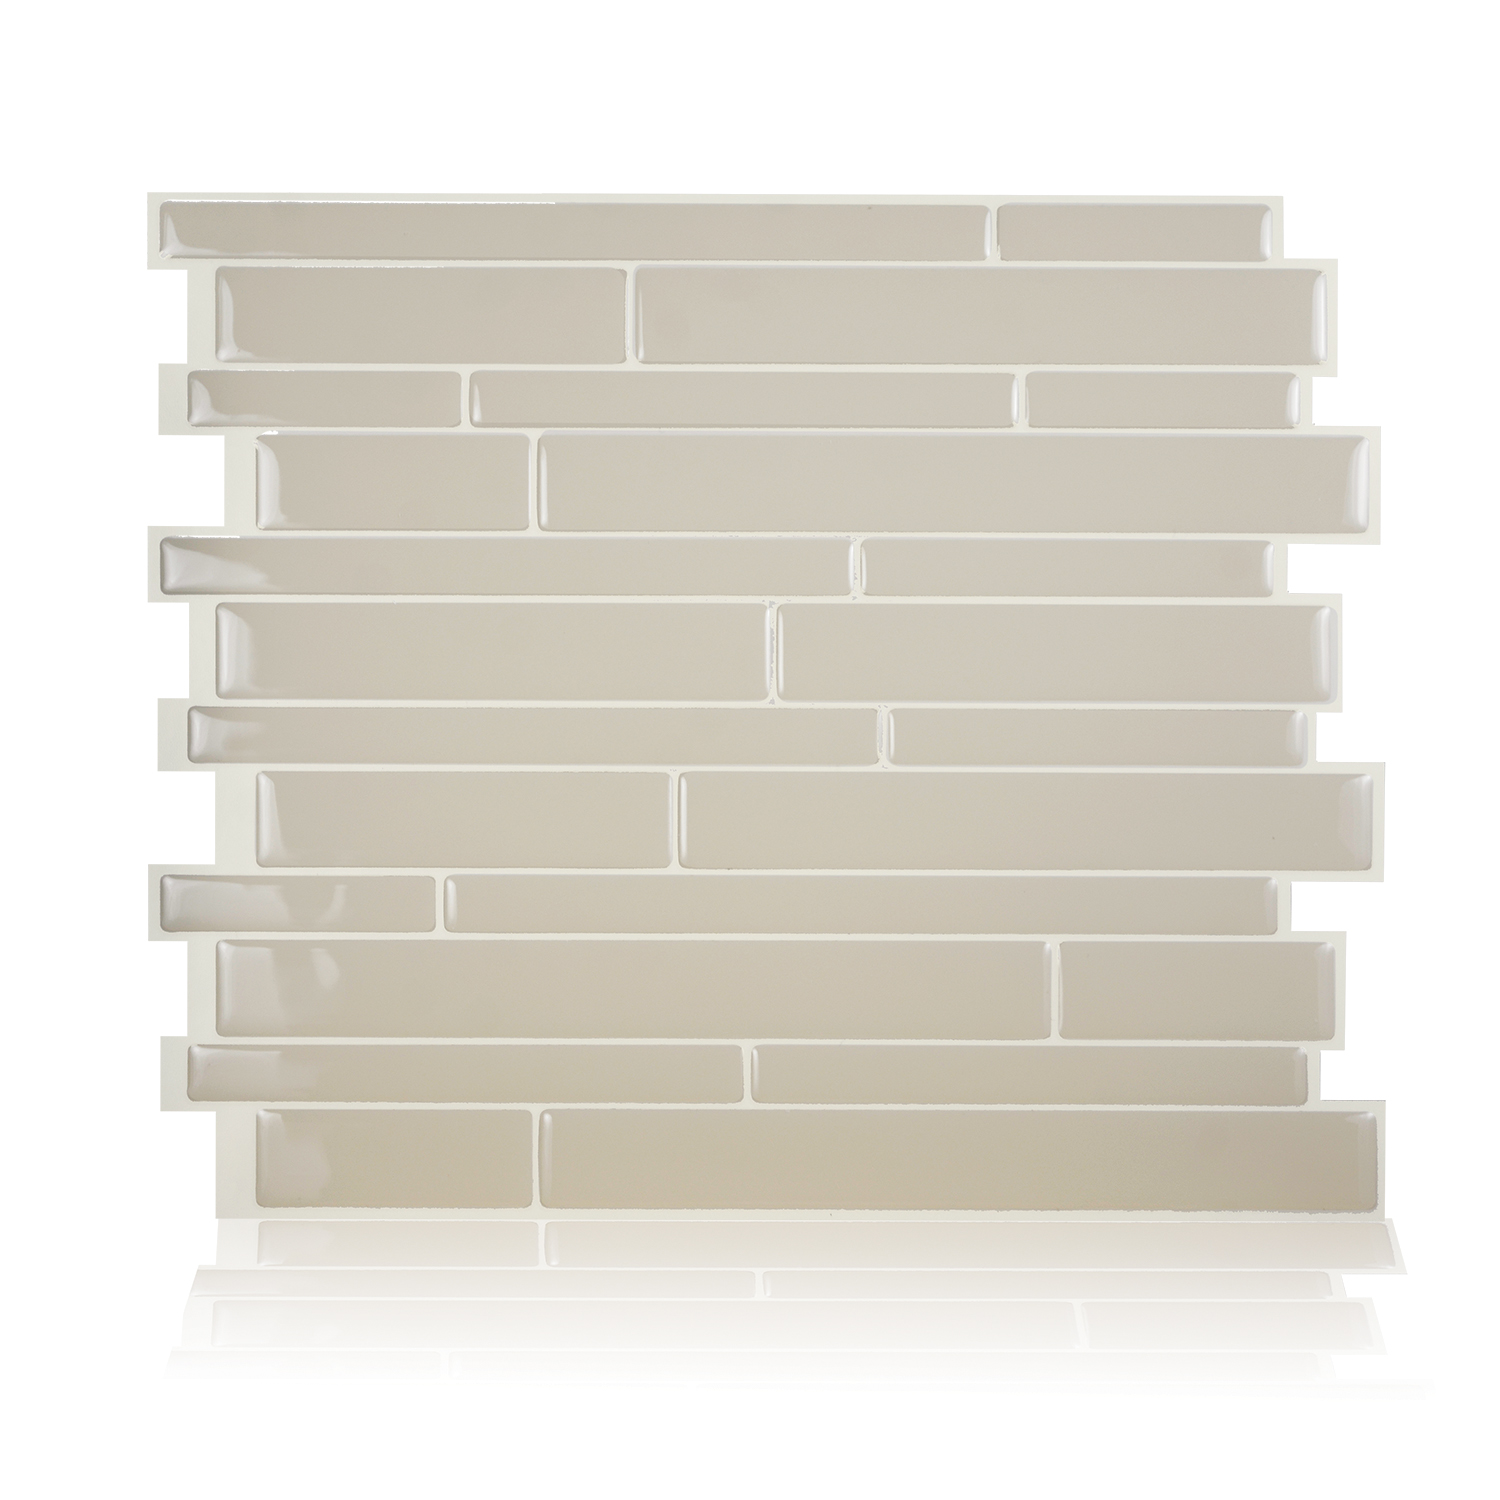 Smart Tiles 11.55 in x 9.63 in Peel and Stick Self-Adhesive Mosaic Backsplash Wall Tile - Milano Crema (each)